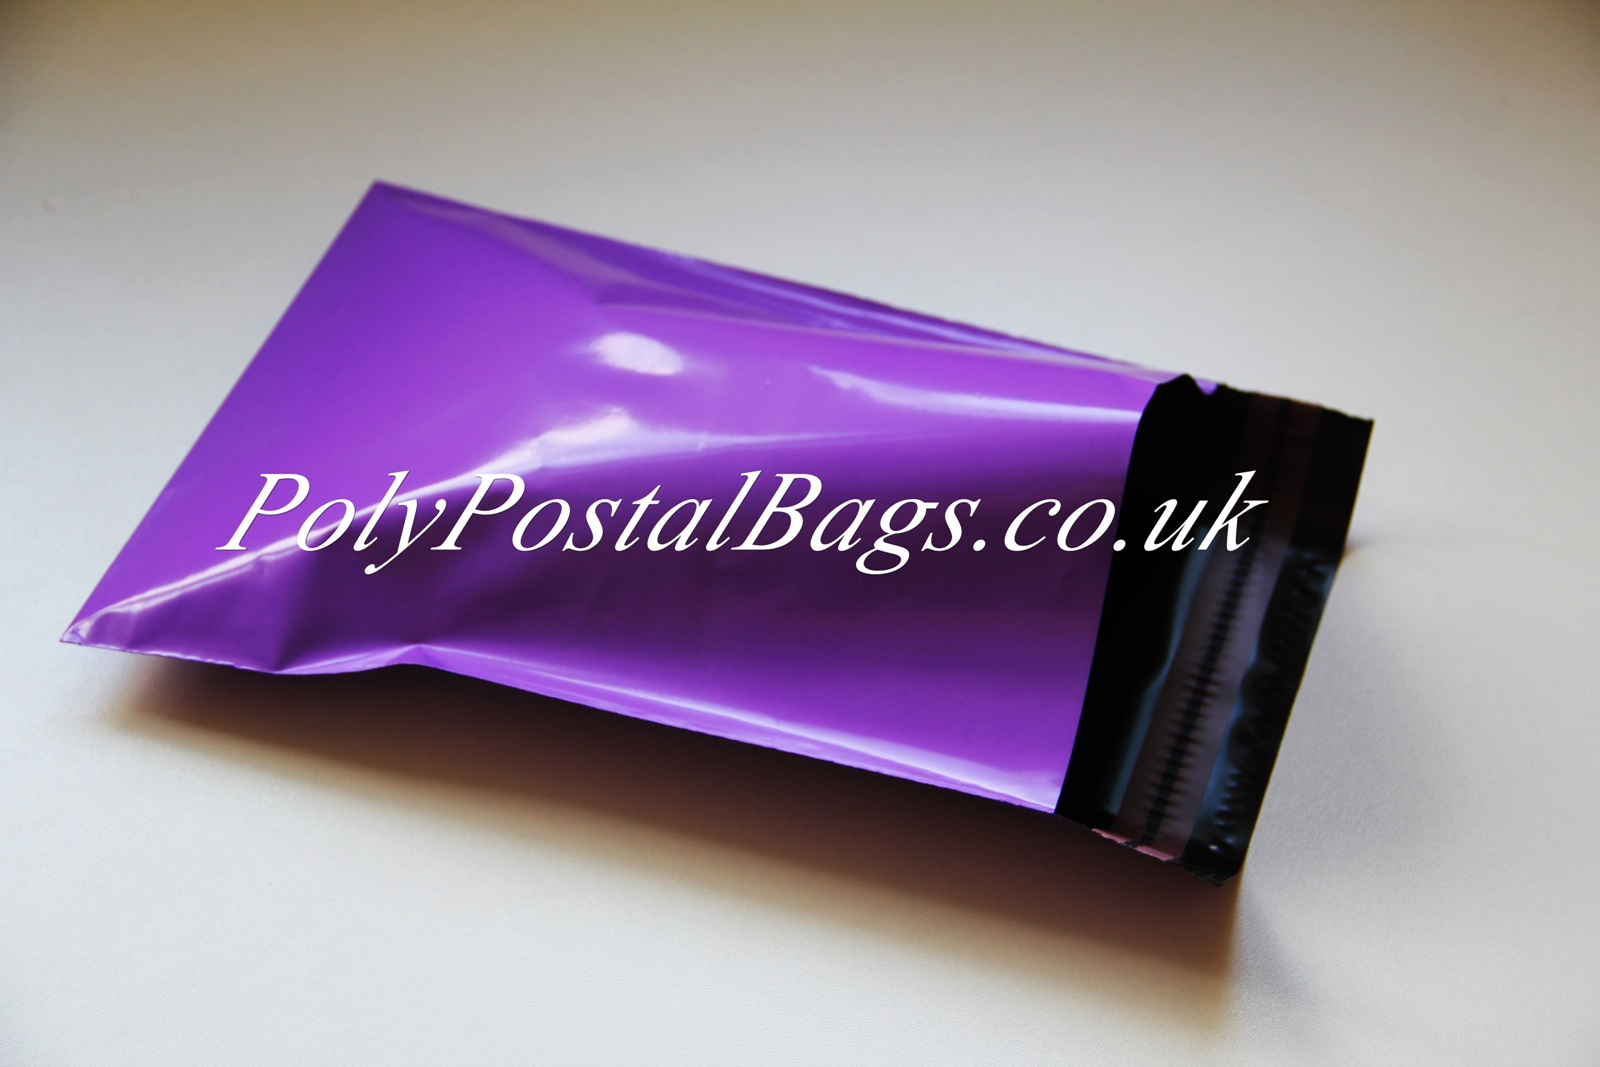 "1000x Violet-Purple Mailing Bags 6.5x9"" - 165x230mm +Lip"